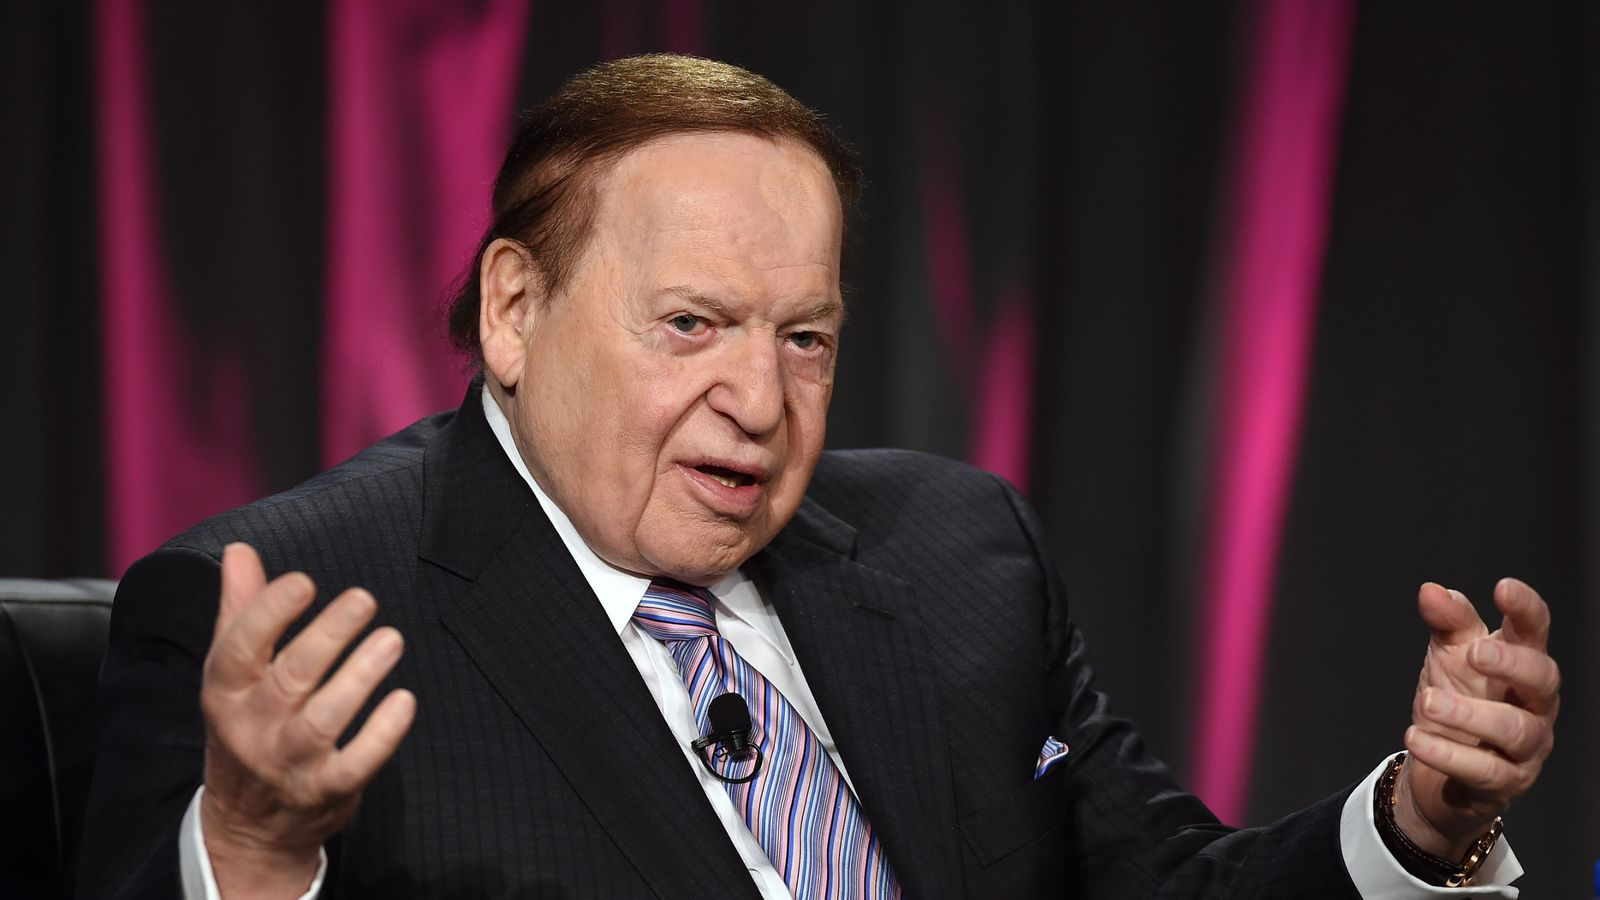 Casino mogul Sheldon Adelson pulls out of Oakland Raiders ...